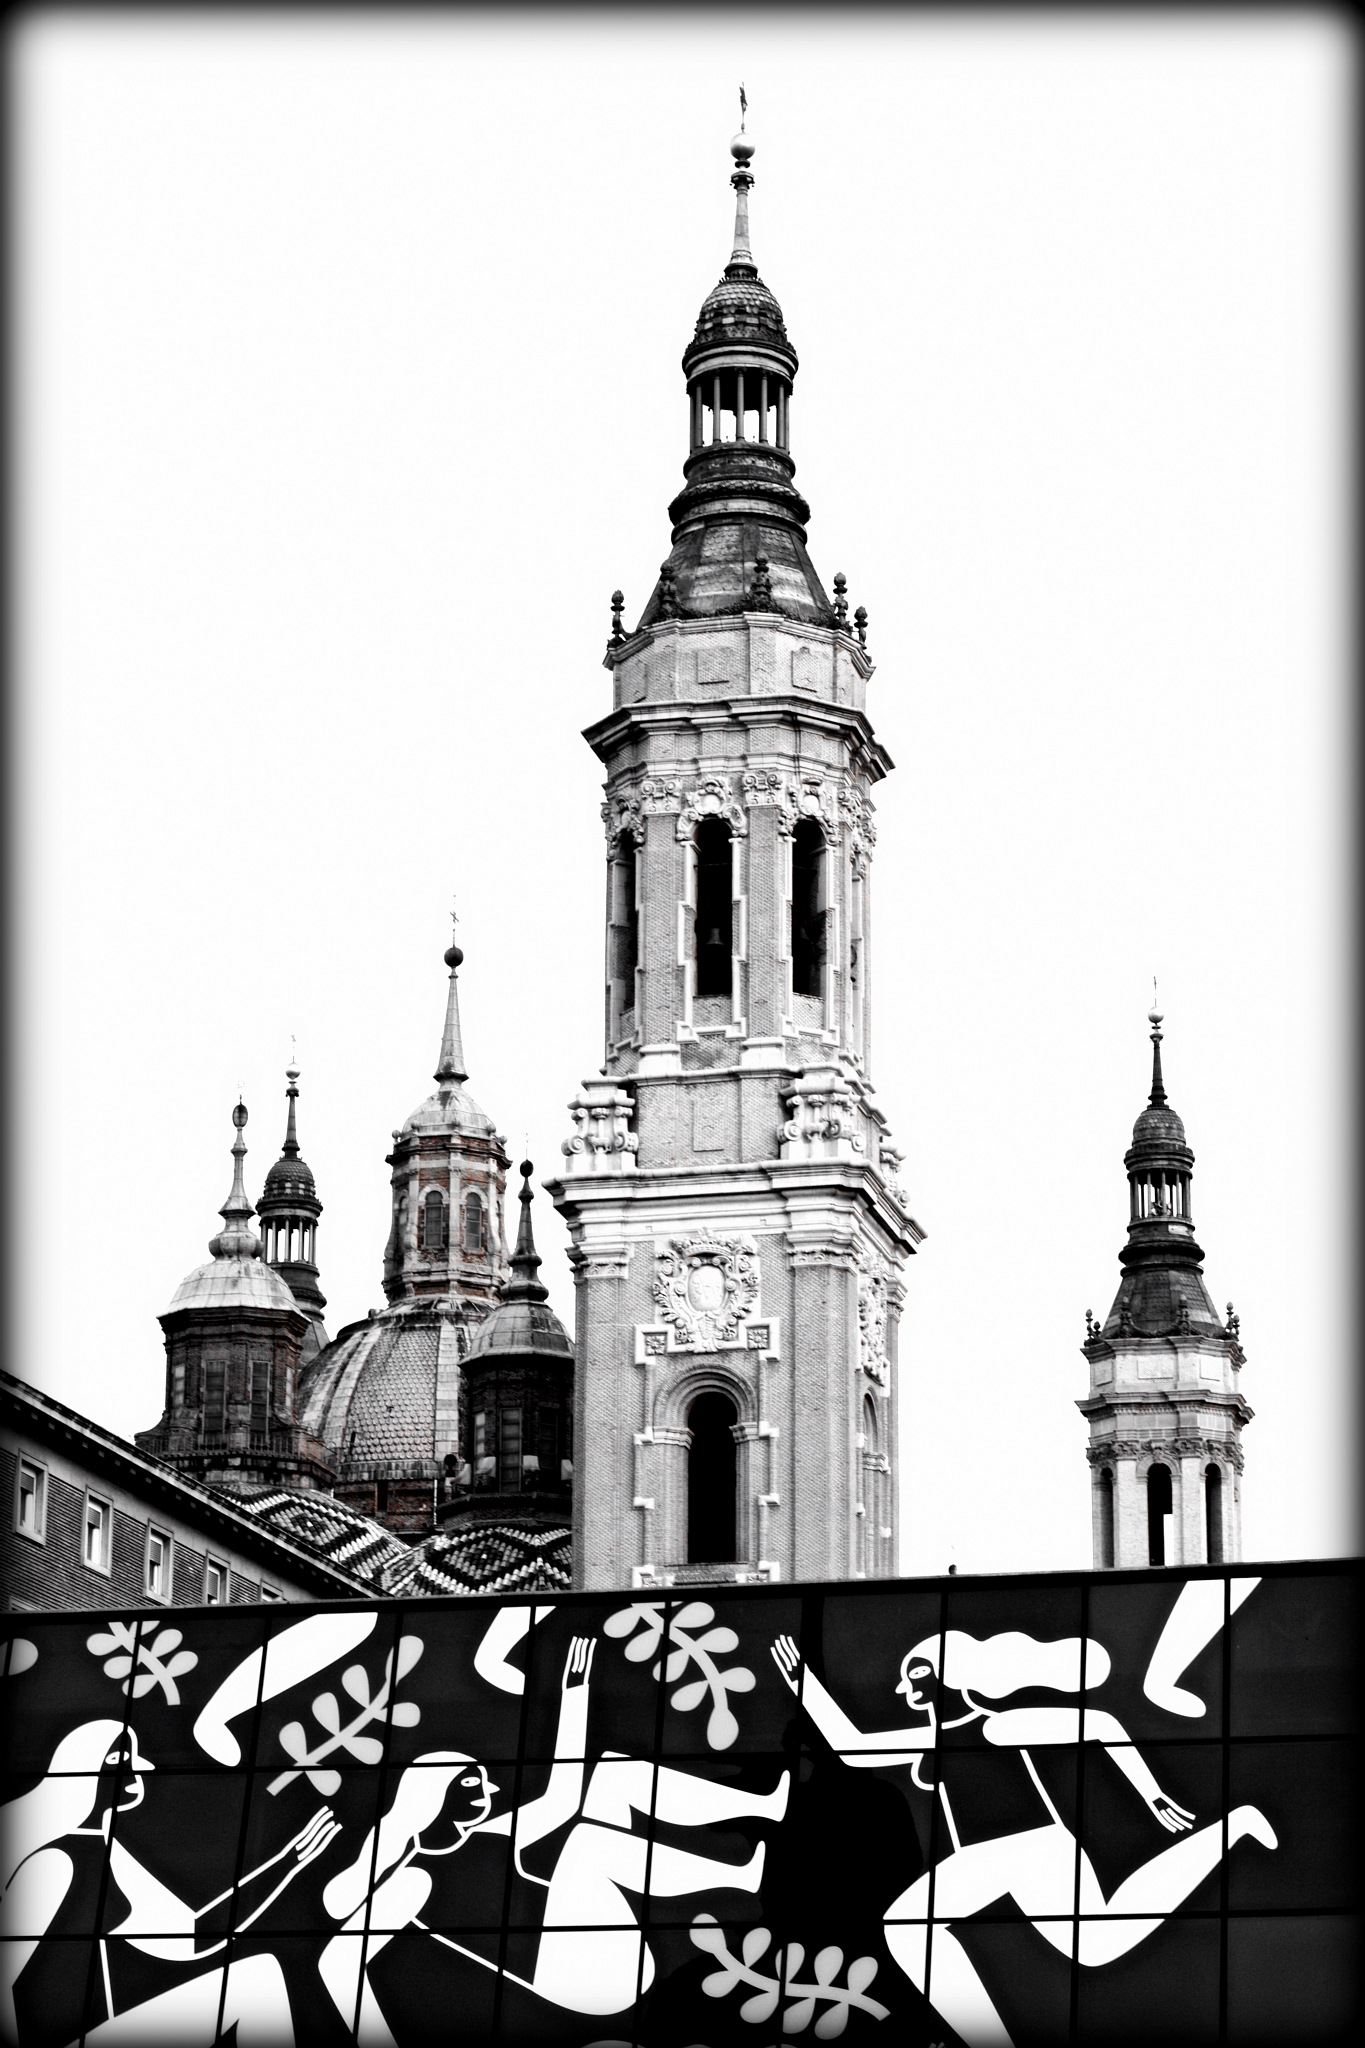 zaragoza by angelgarcia